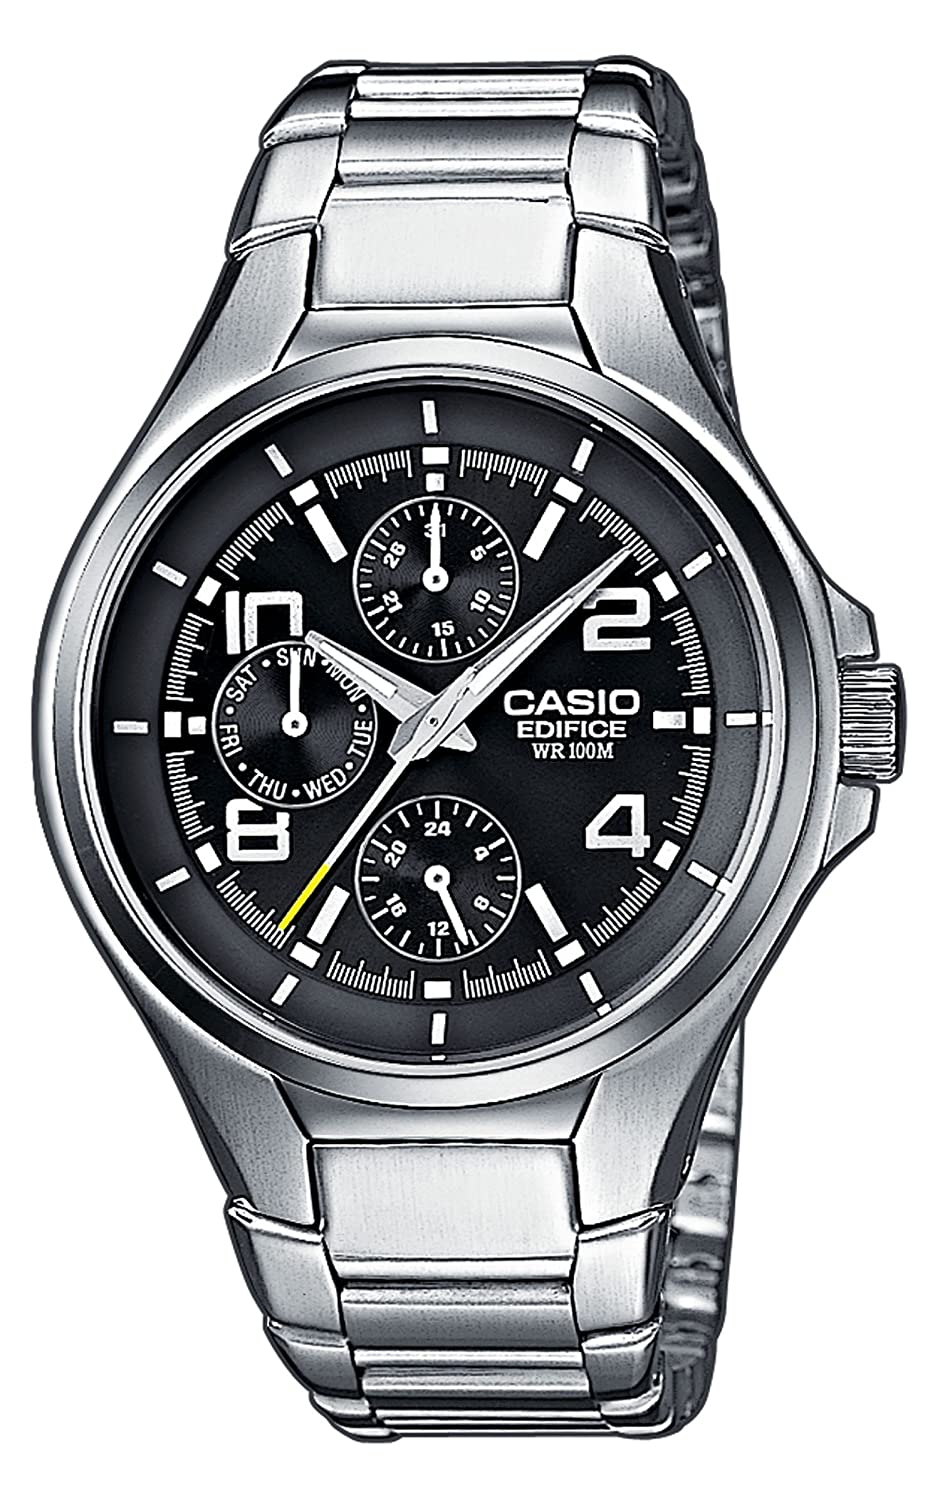 c7544c767114 Casio Edifice Men s Watch EF-316D-1AVEF  Amazon.co.uk  Watches